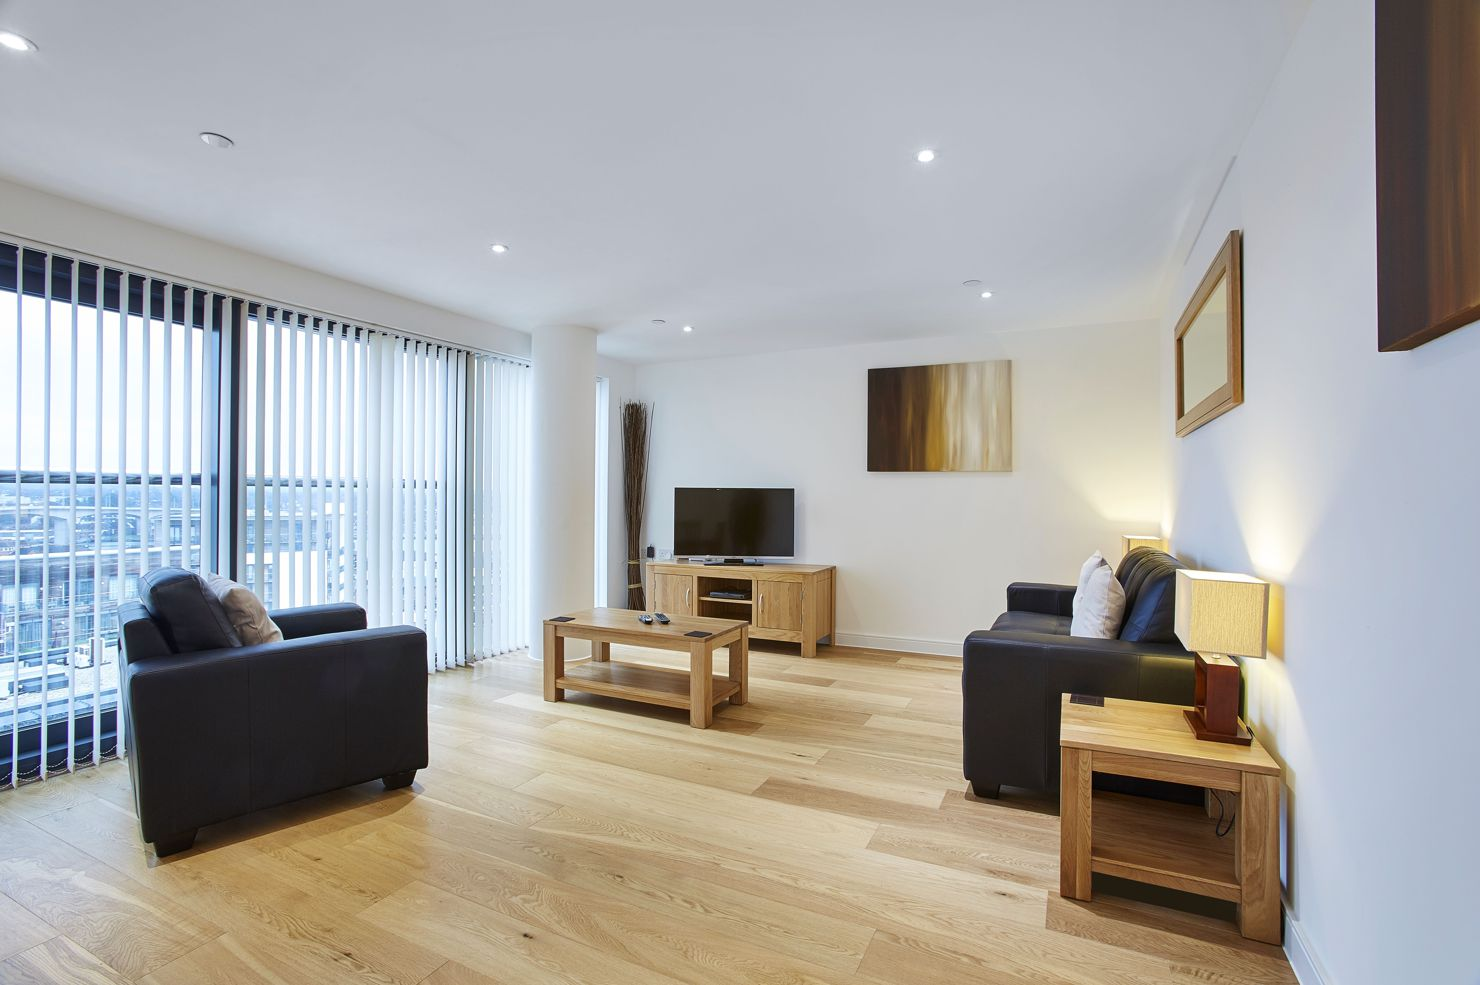 The-Hawkins-Tower-Self-Catering-Accommodation-Southampton---Serviced-Apartments-UK-with-parking-|-Urban-Stay